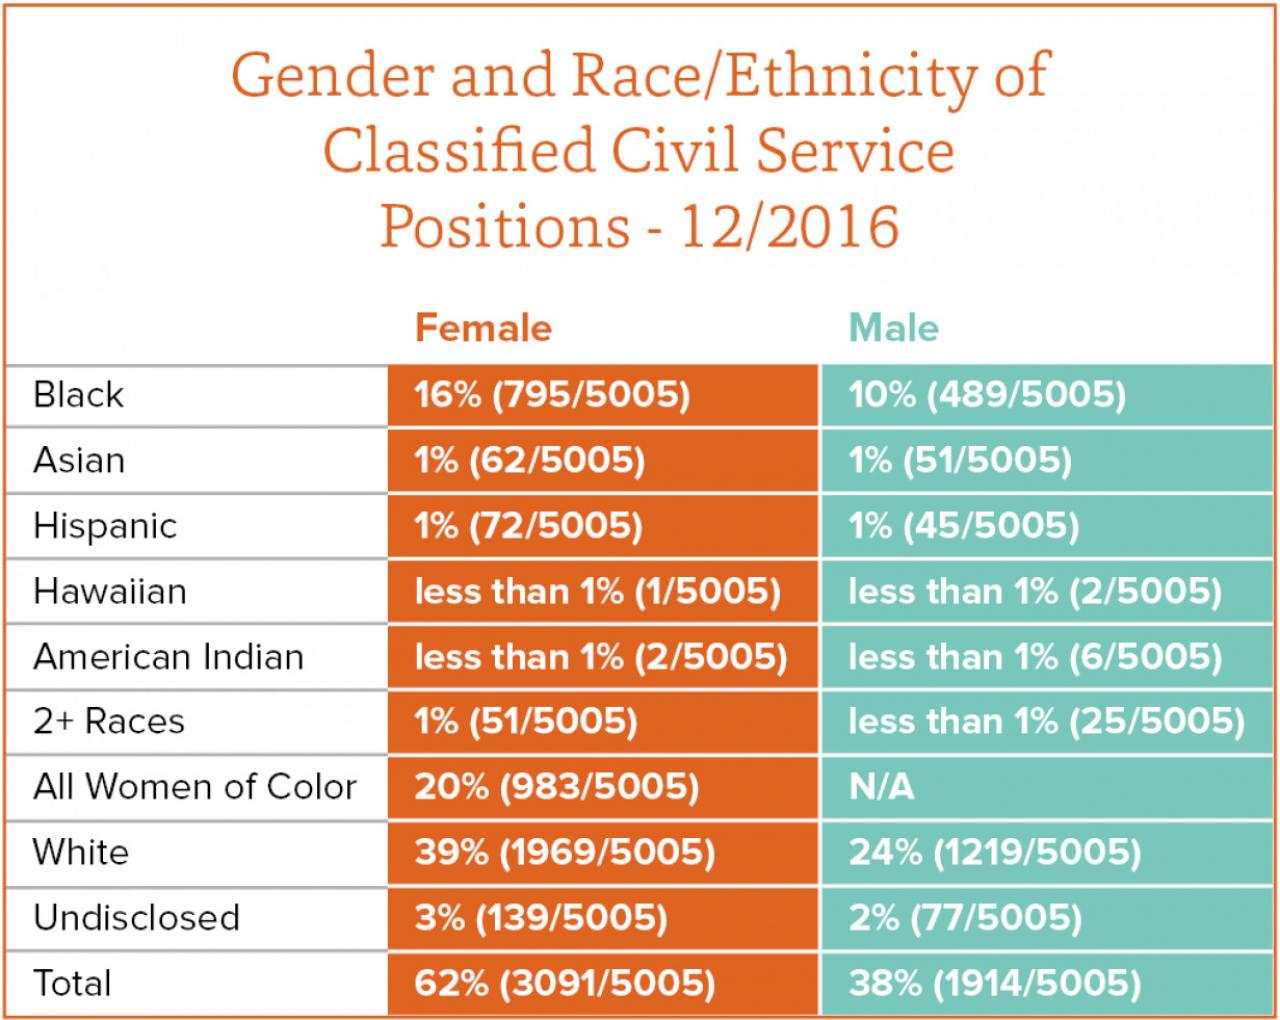 Gender and race ethnicity of classified civil service positions